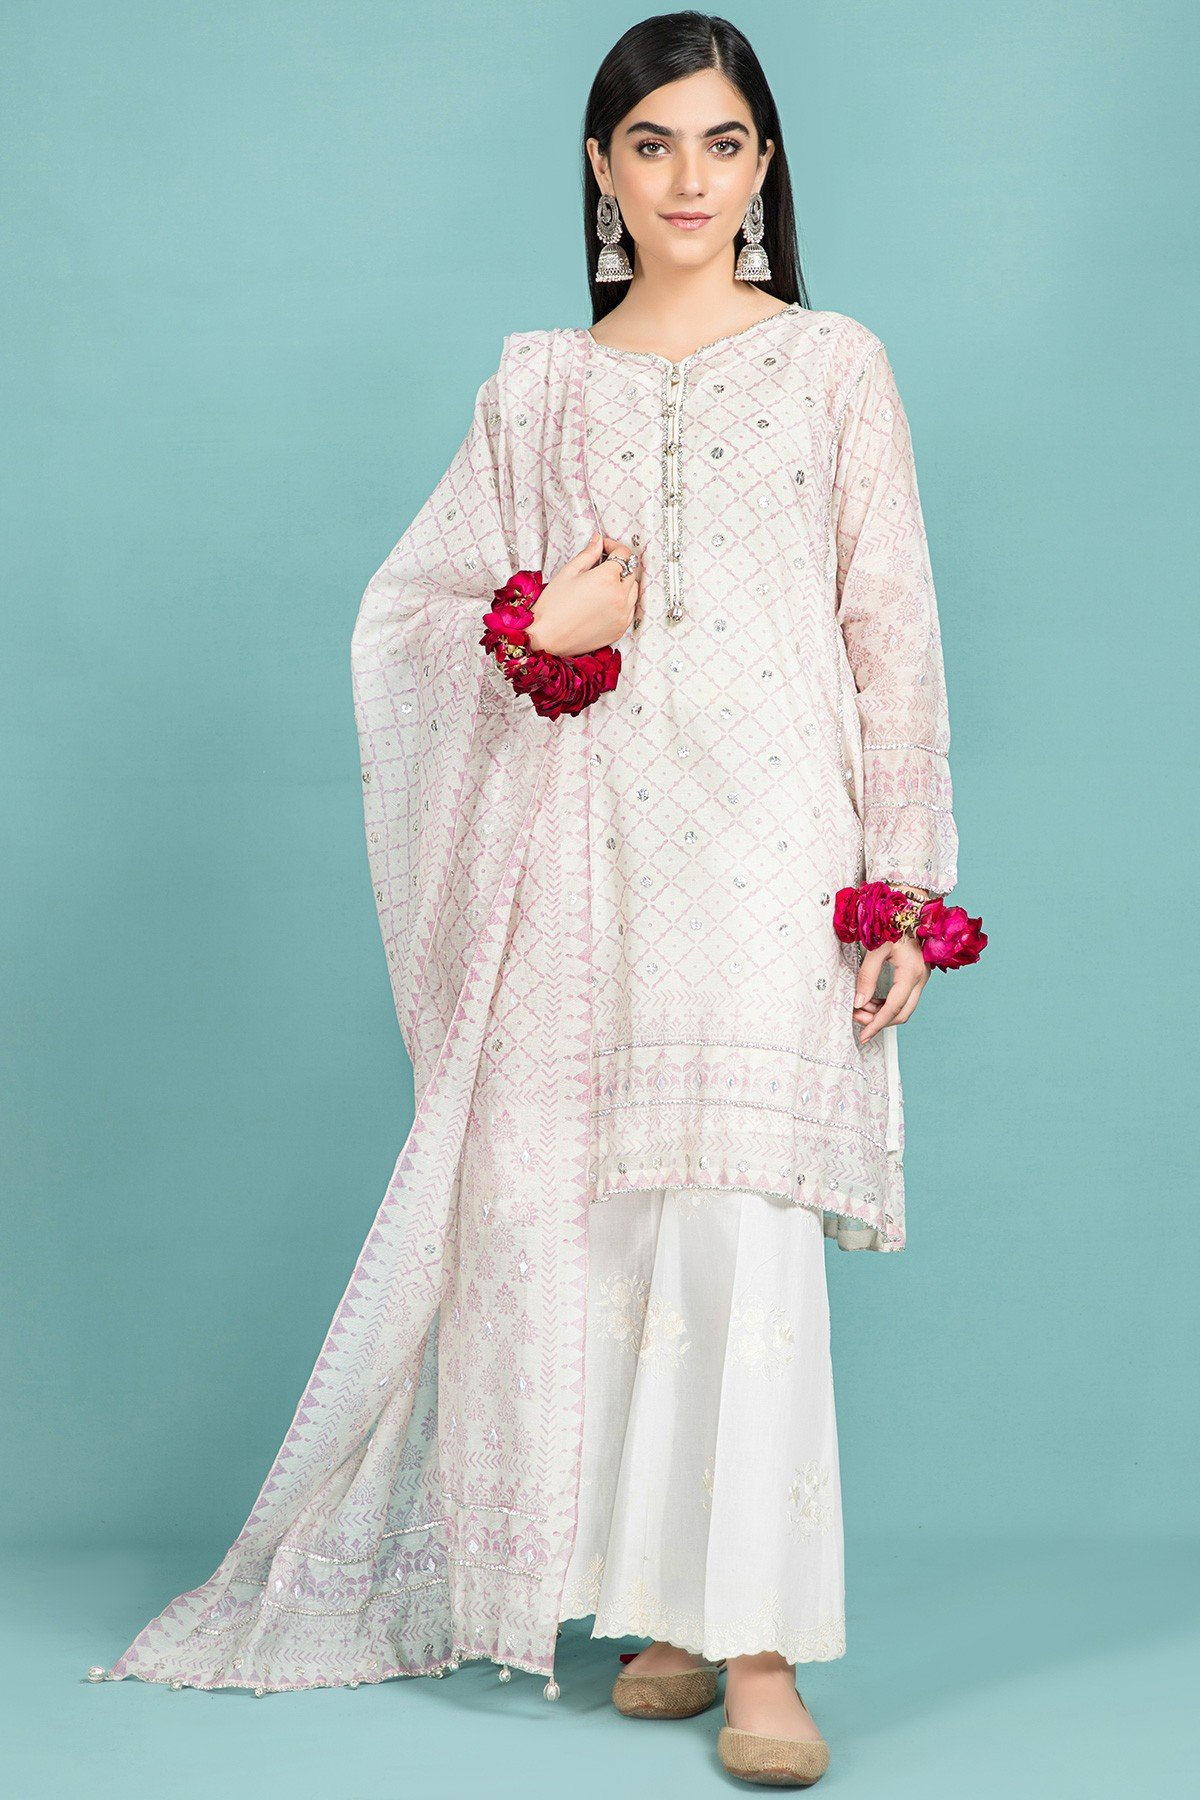 Pret & Printed Kayseria Beautiful Fancy Eid Dresses Collection 2021-2022 (13)